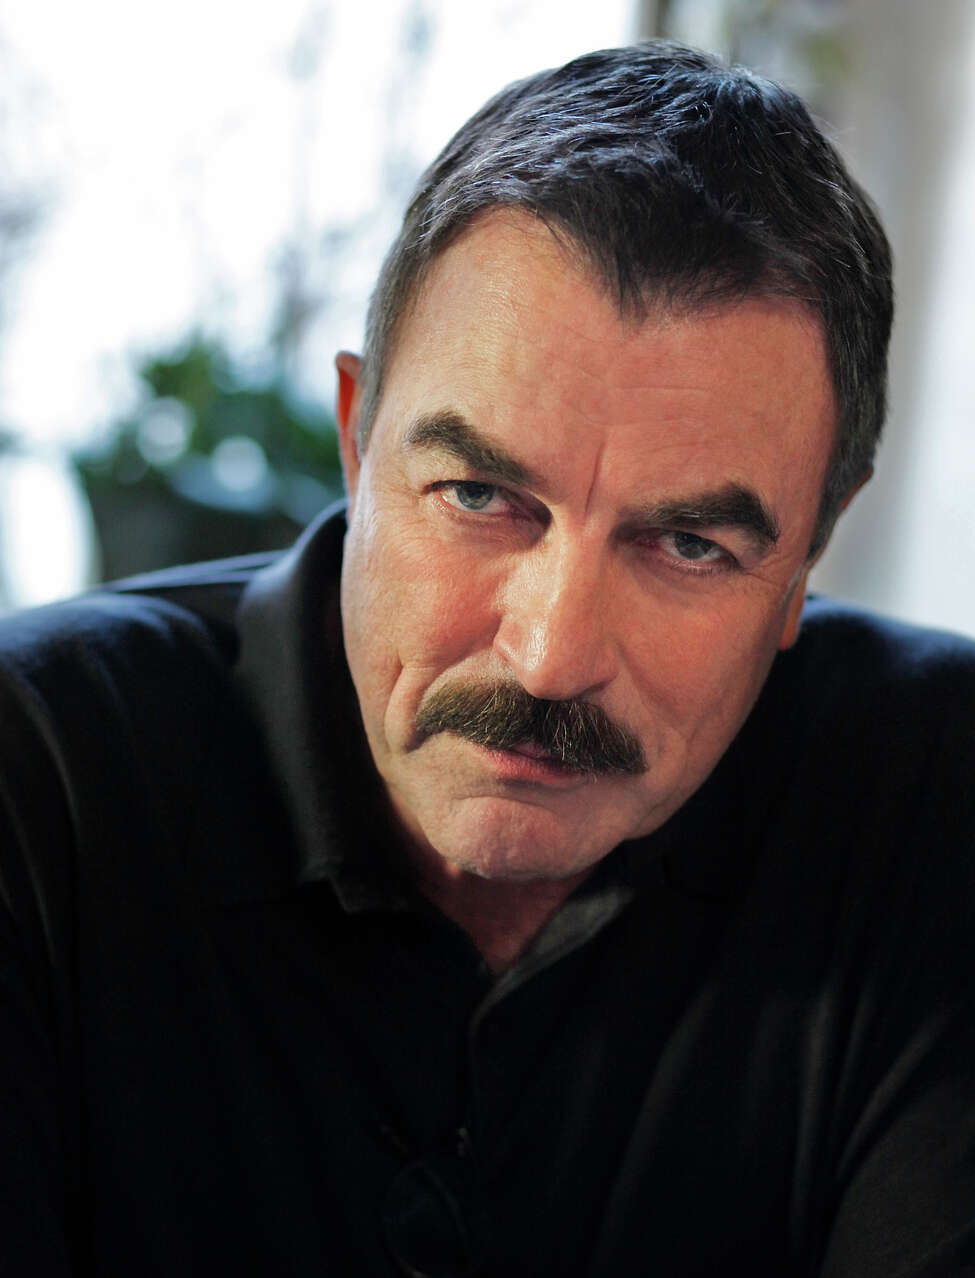 Coverage of the CBS Pilot BLUE BLOODS. This photo is provided for use in conjunction with the TCA Summer Press Tour 2010. Pictured: Tom Selleck Photo: Marni Grossman/CBS AƒAƒA centsA€AšAƒA'A'A©2010 CBS Broadcasting Inc. All Rights Reserved.